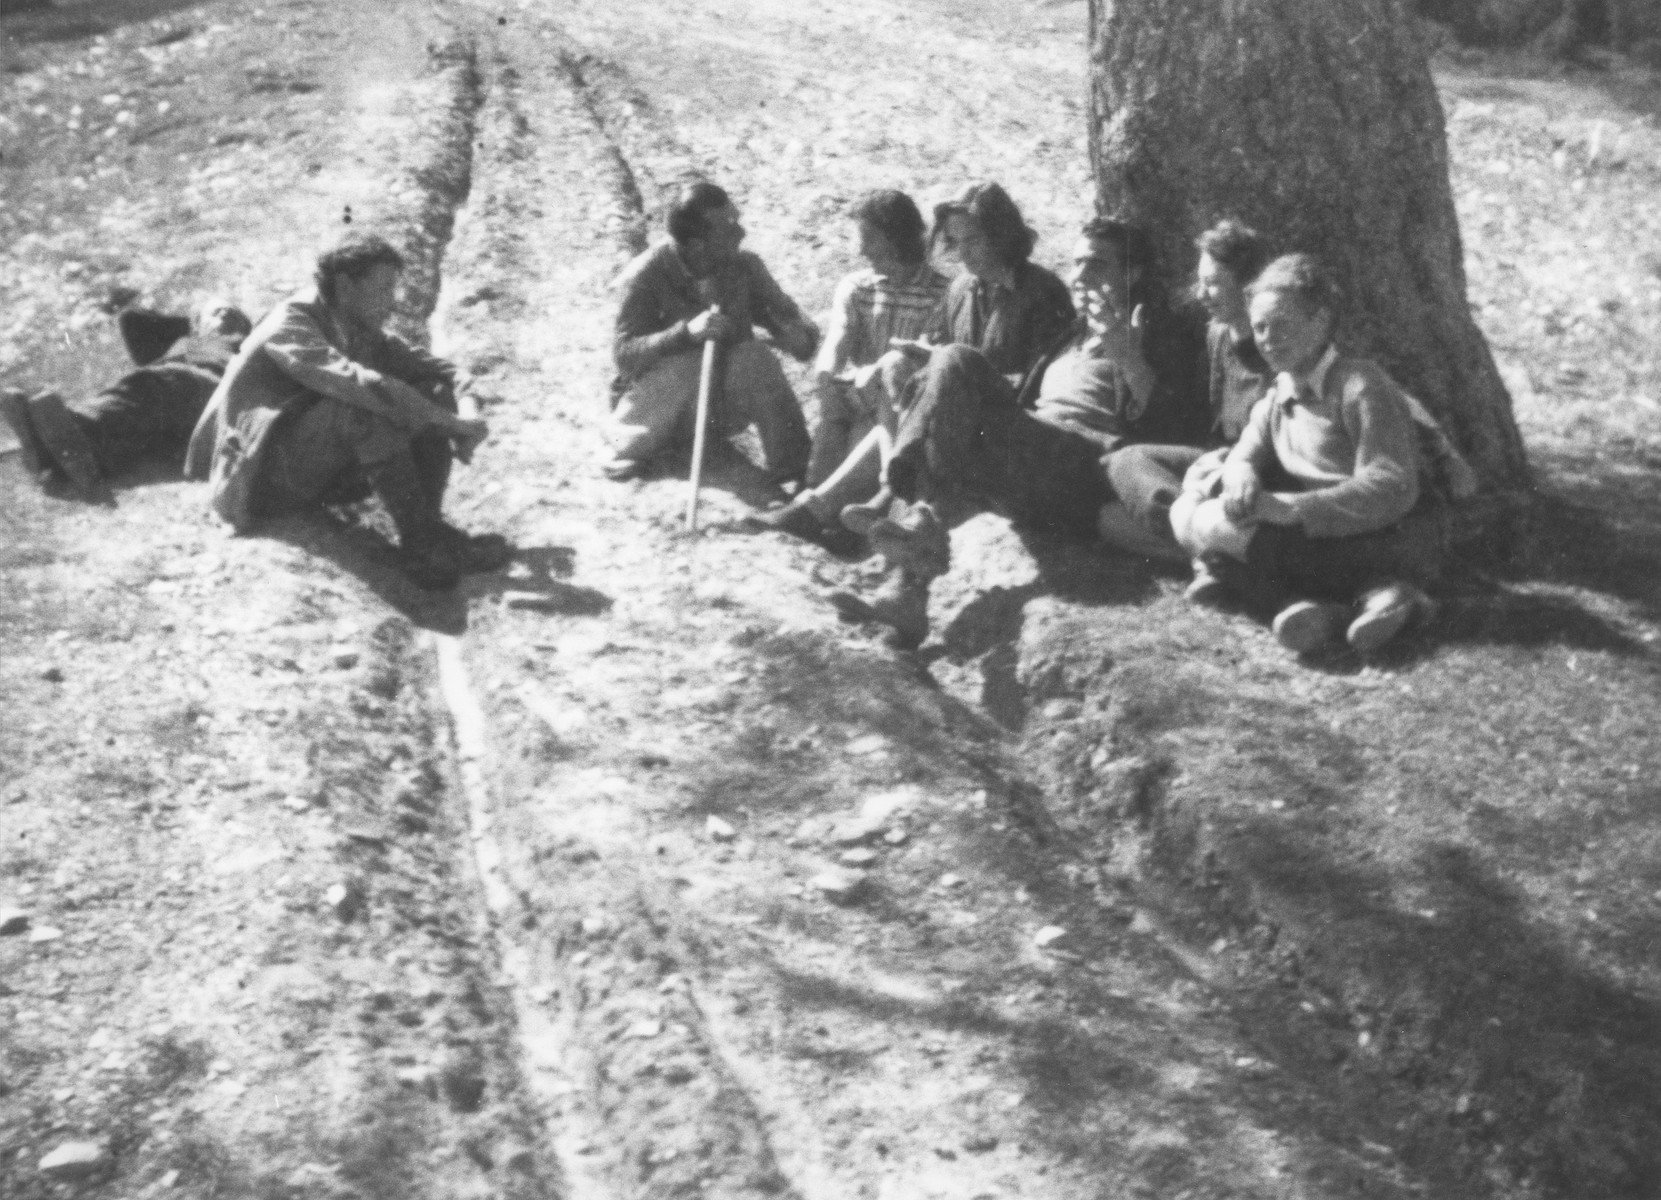 Jewish refugees rest beneath a tree during their escape over the Alps to Italy from the Italian-occupied zone in France following the signing of the Italian armistice.  Carl Roman and his mother are pictured on the far right.